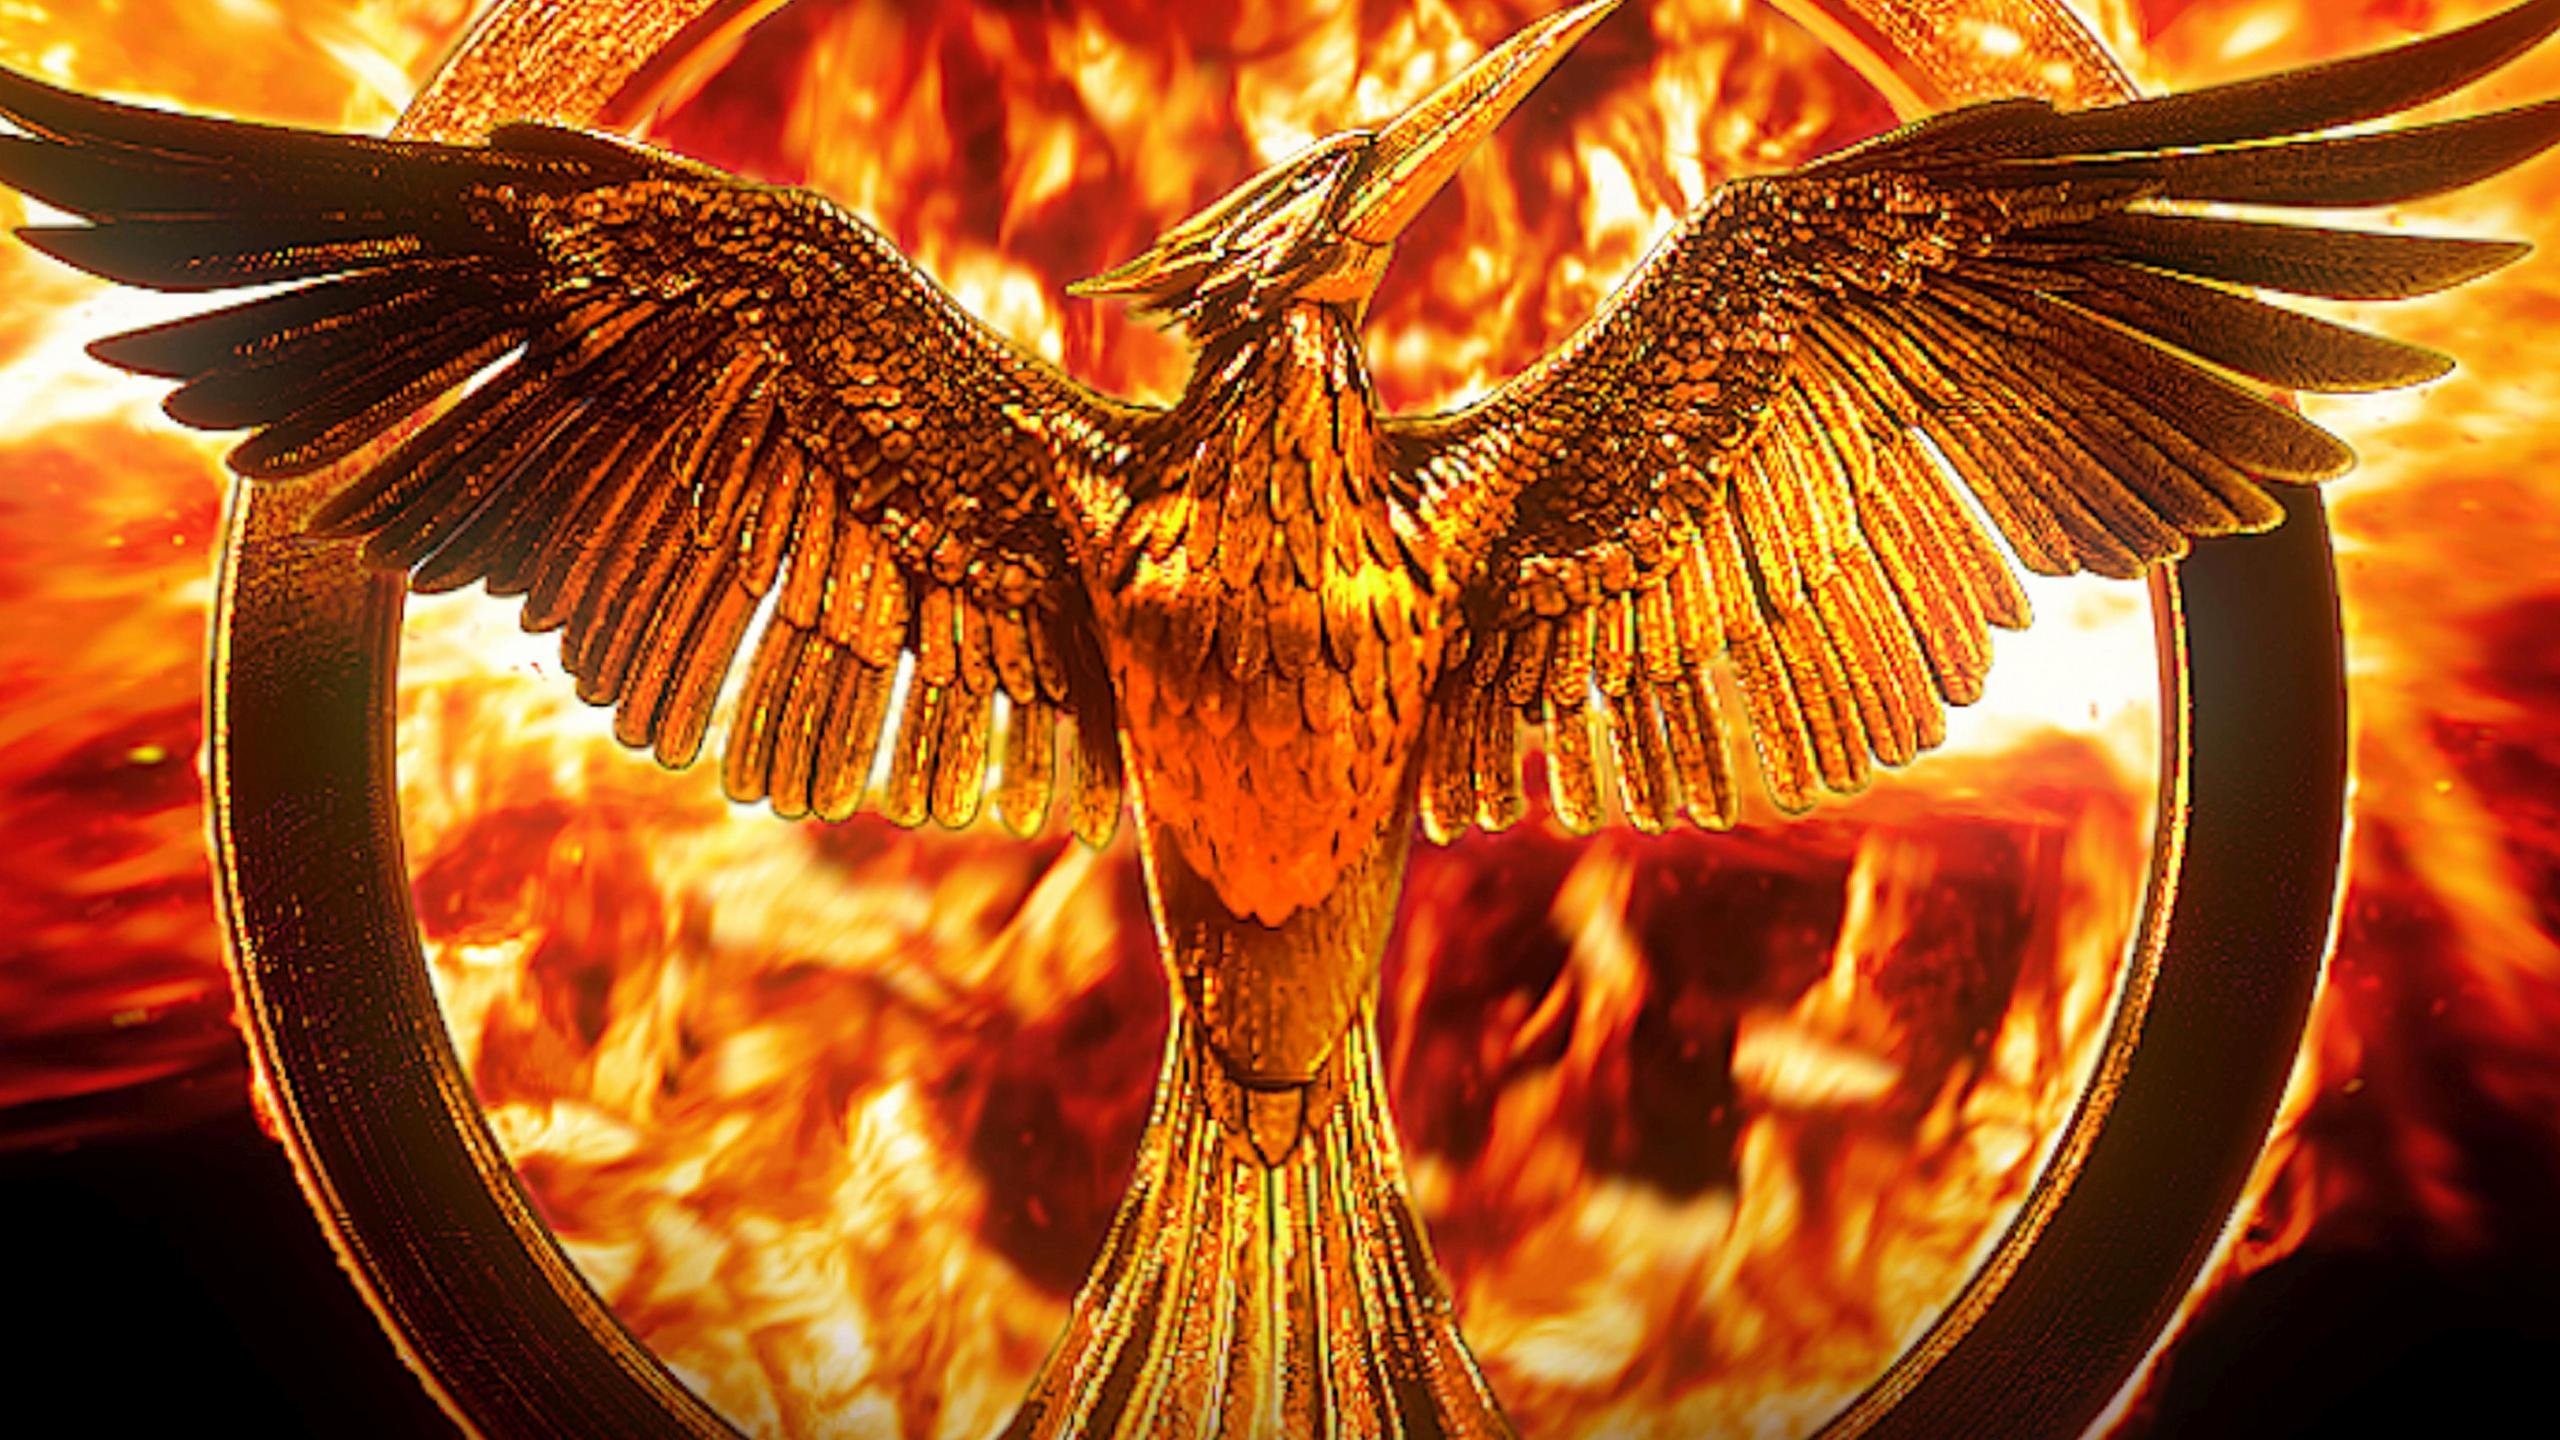 The Hunger Games 2560x1440 Background Wallpaper | Cool ...